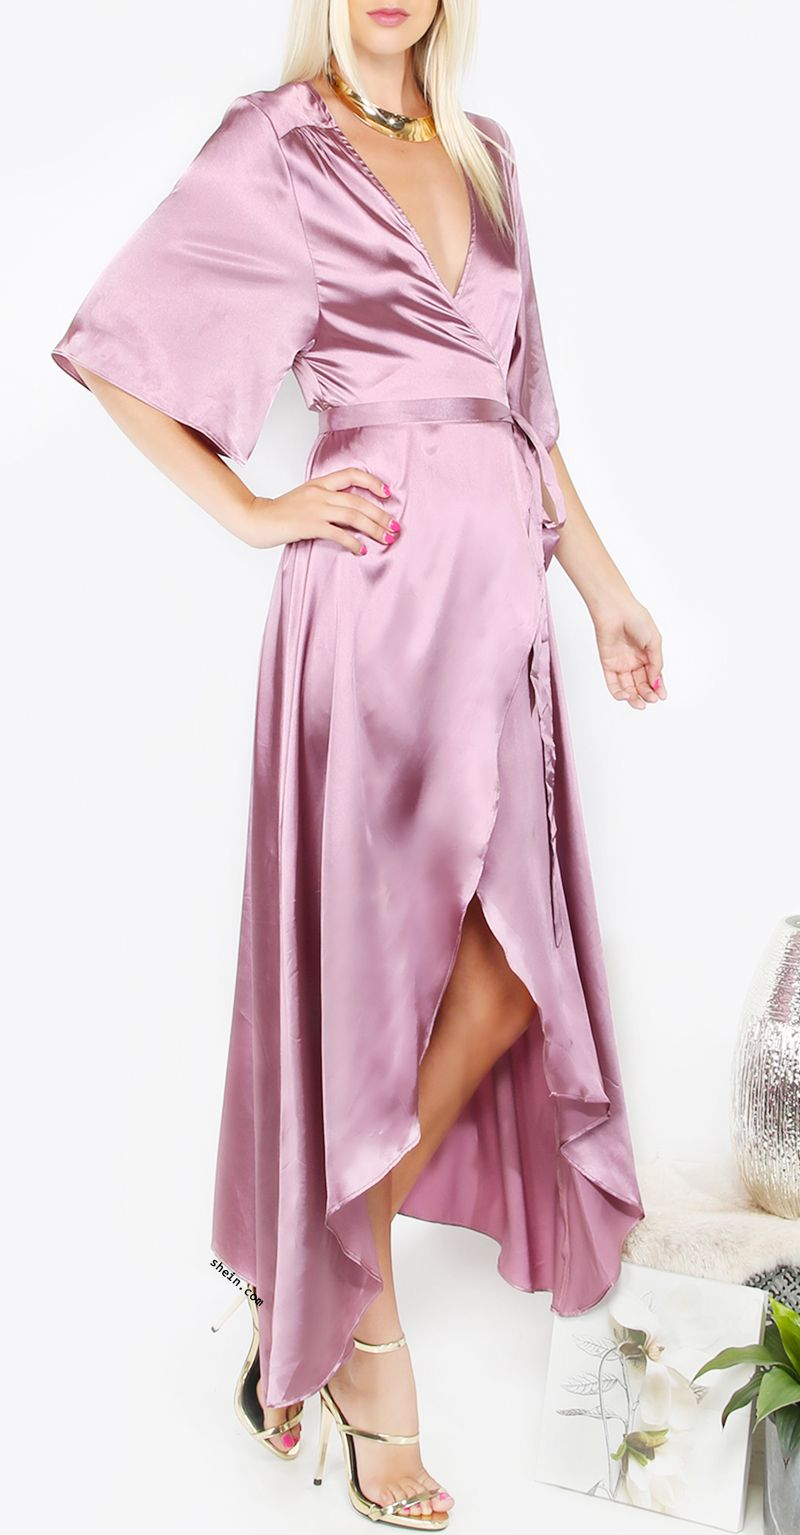 Light Purple Short Sleeve Long Dress | Pinterest | Ropa y Vestiditos